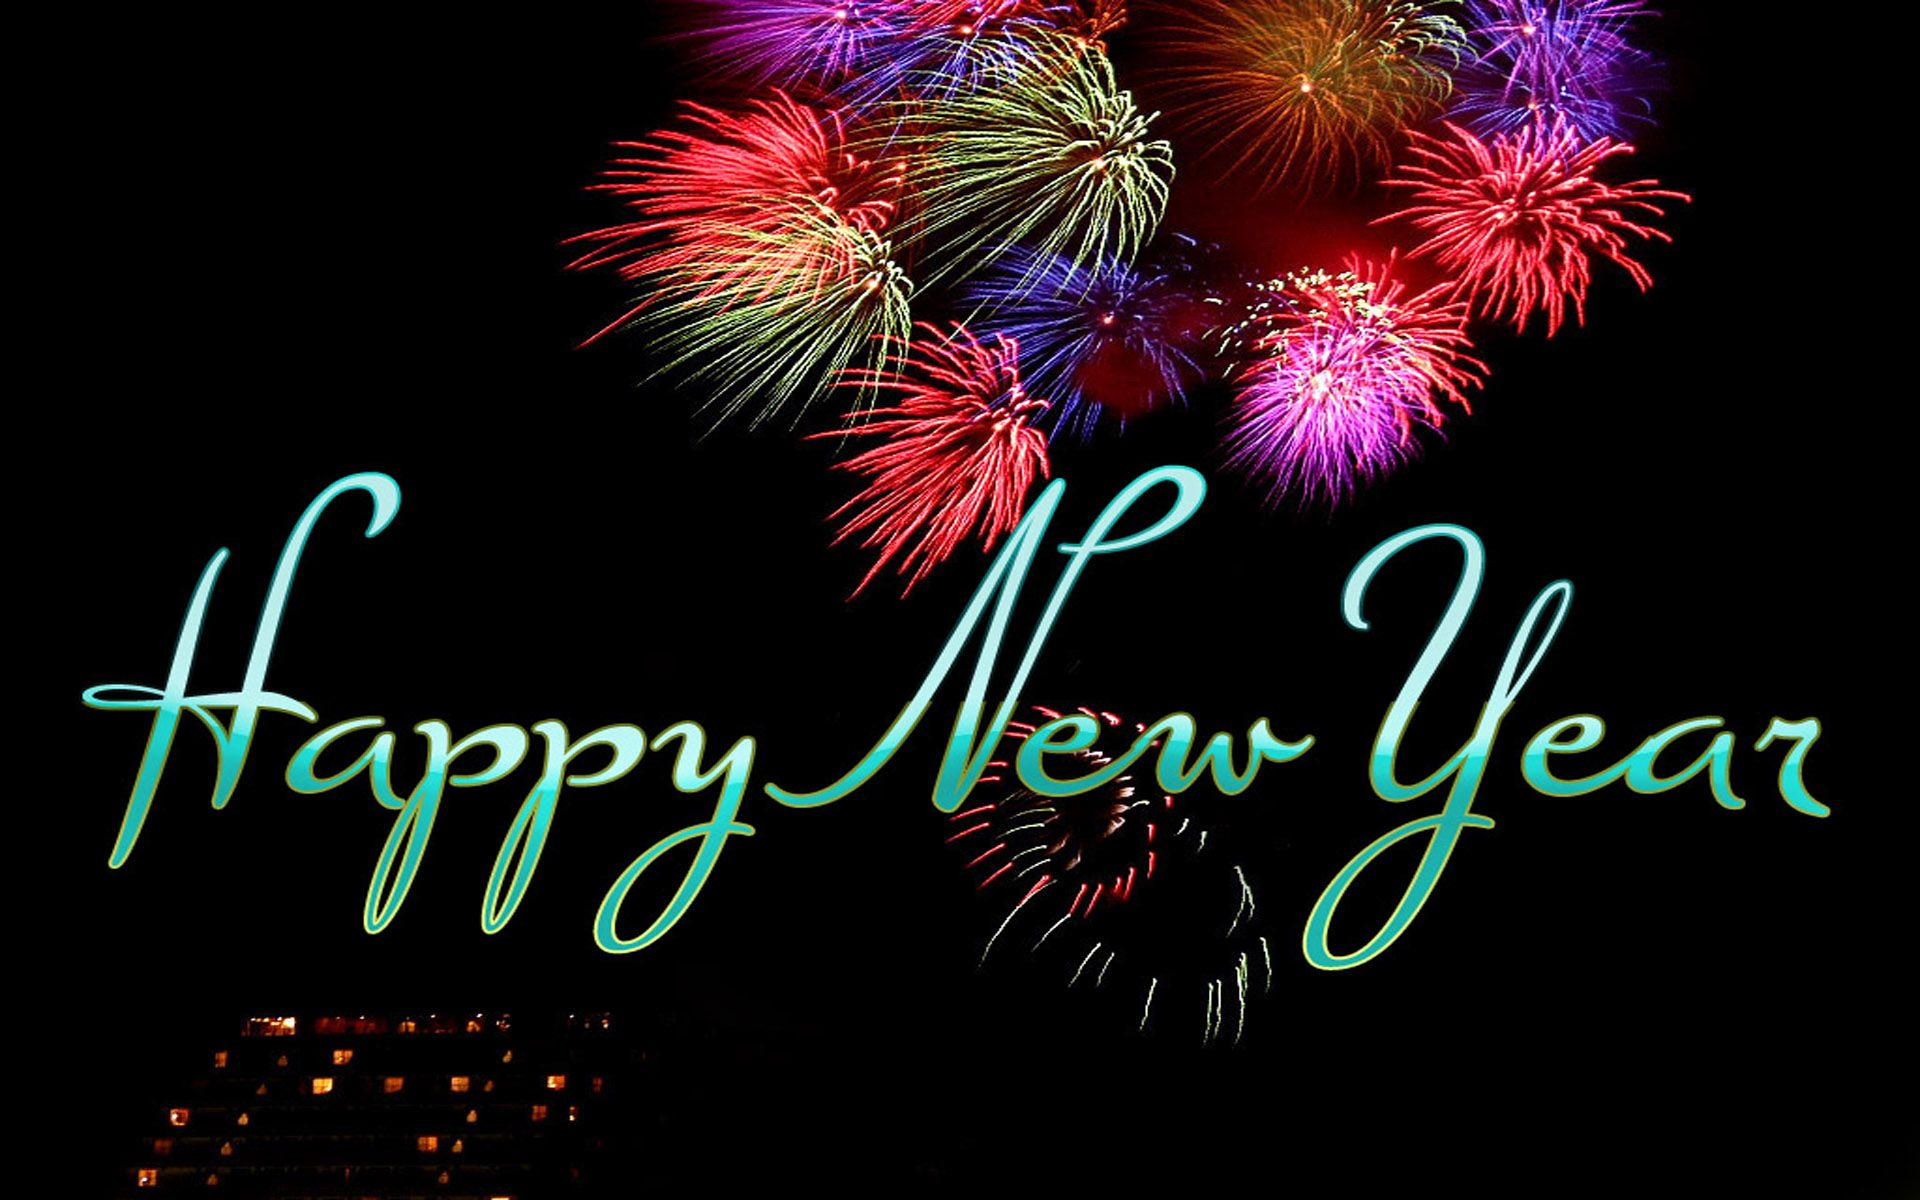 Wallpaper download new year - Happy New Year Images Hd Wallpapers Pictures Photo Pics Free Download